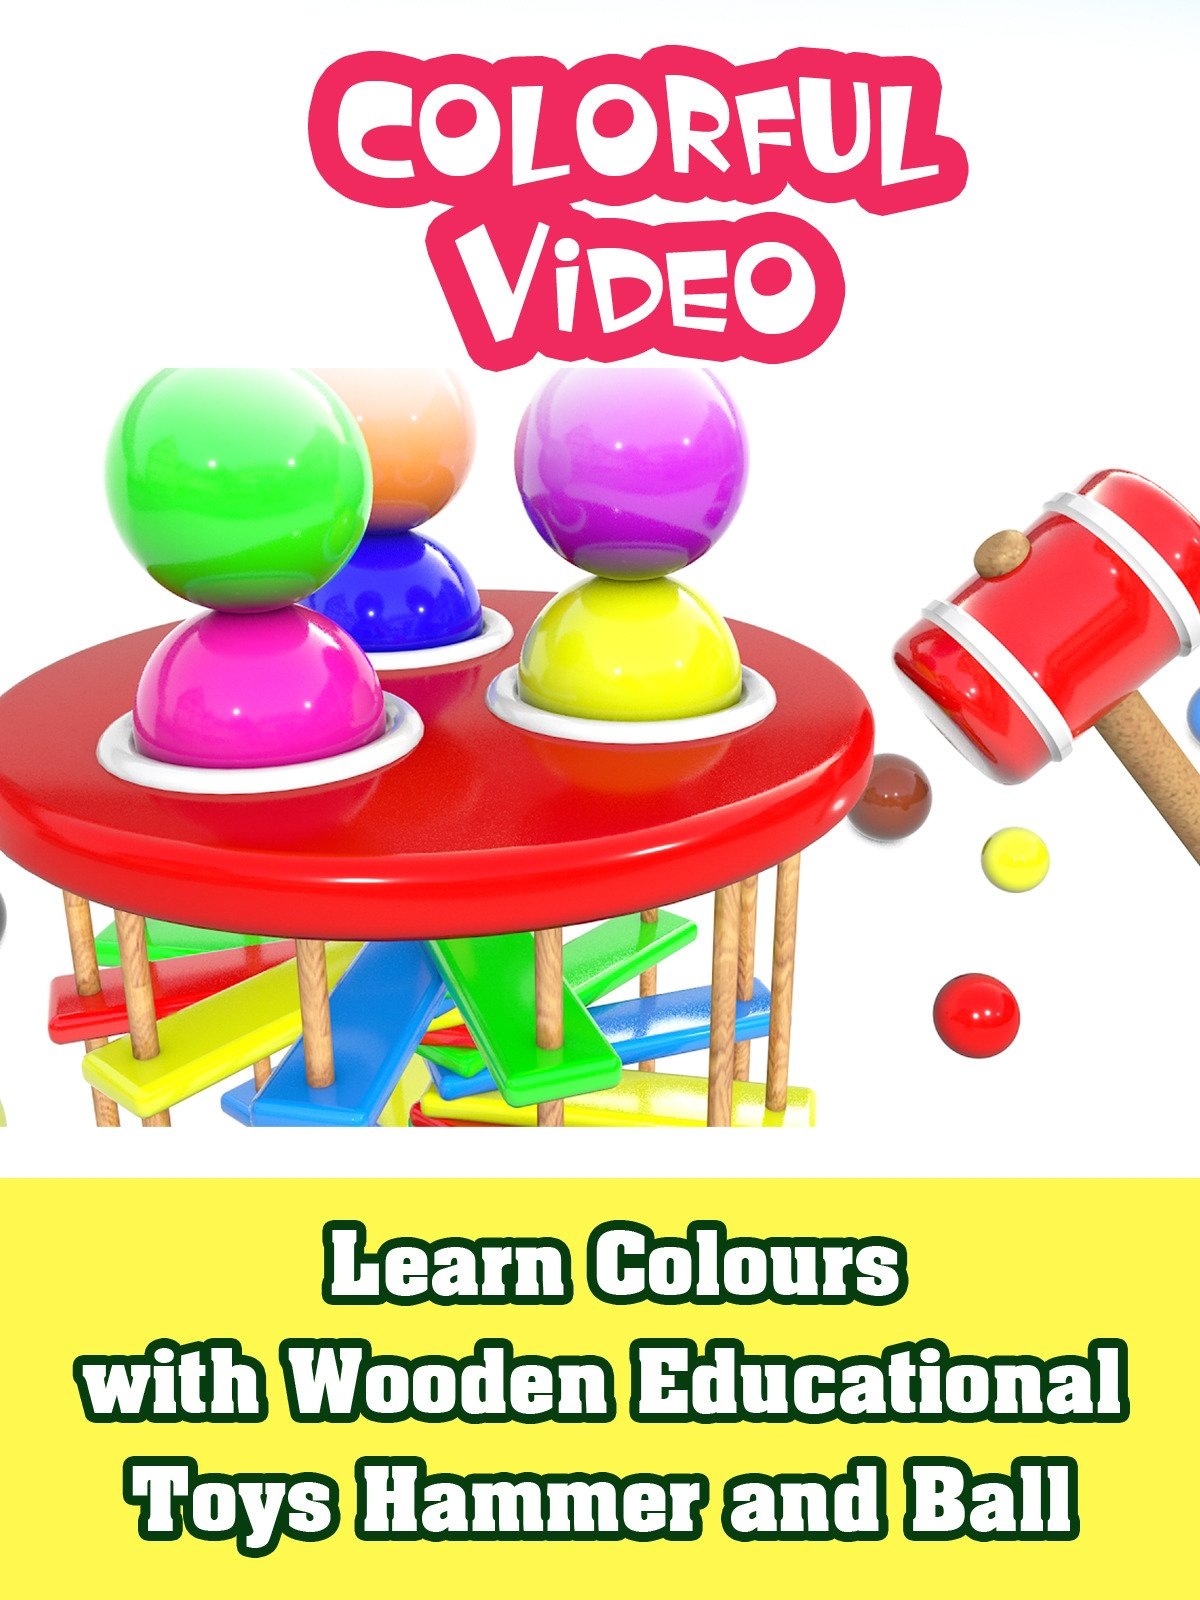 Learn Colours with Wooden Educational Toys Hammer and Ball